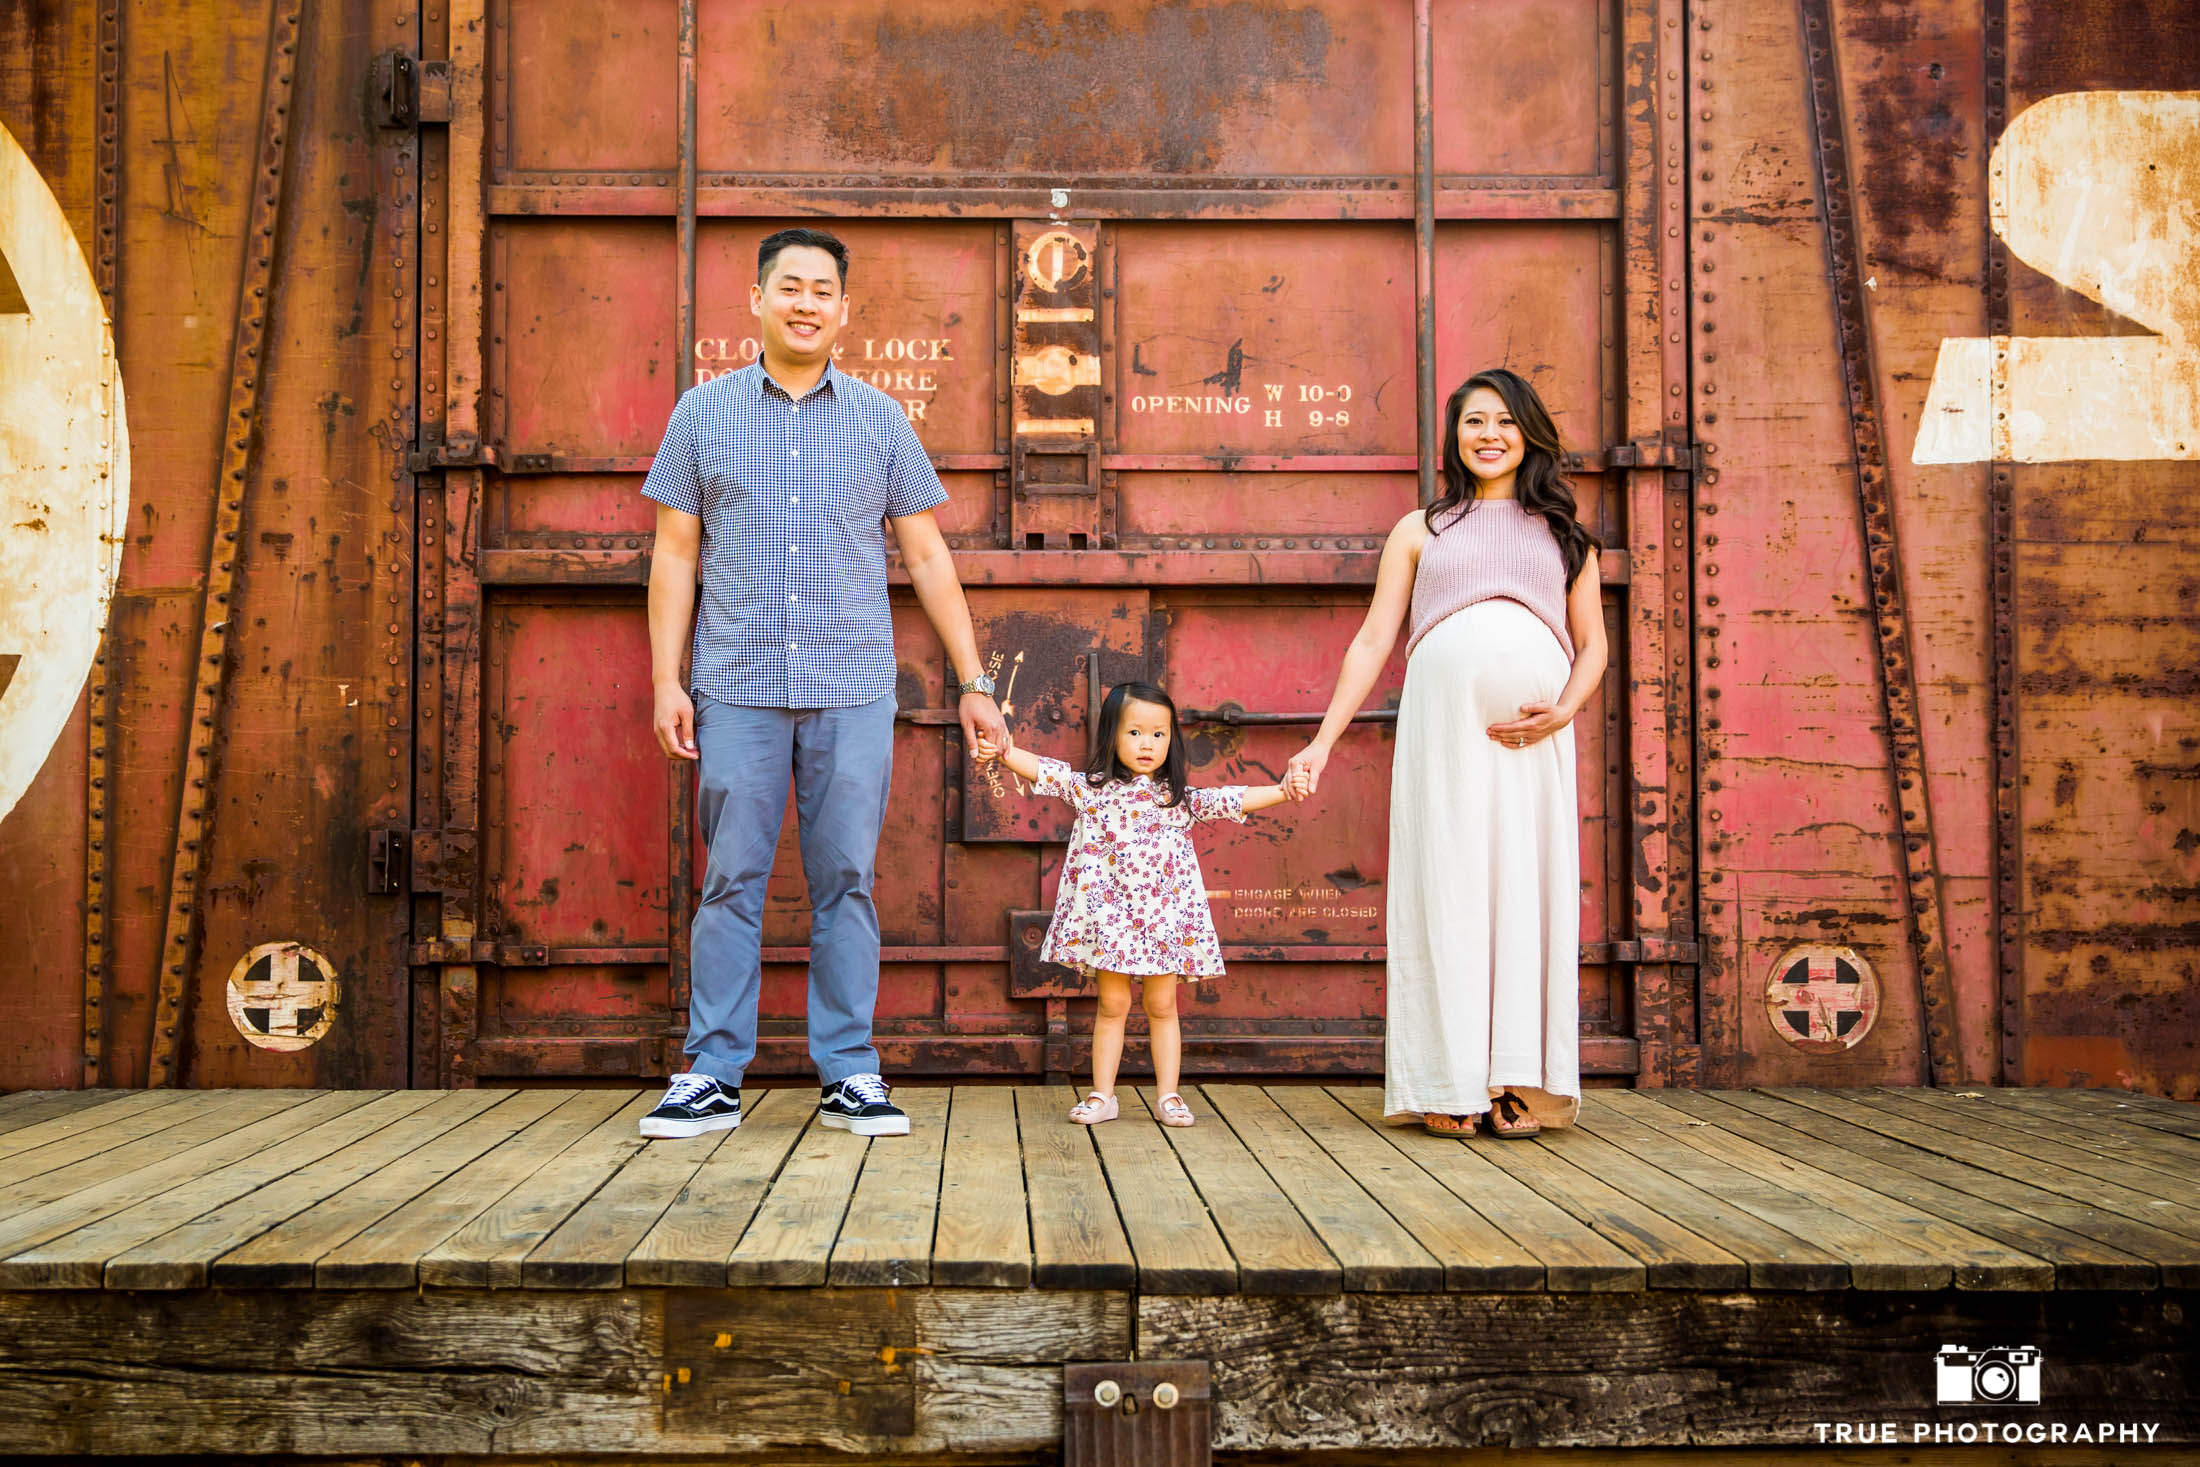 This family of three will soon be a family of four.